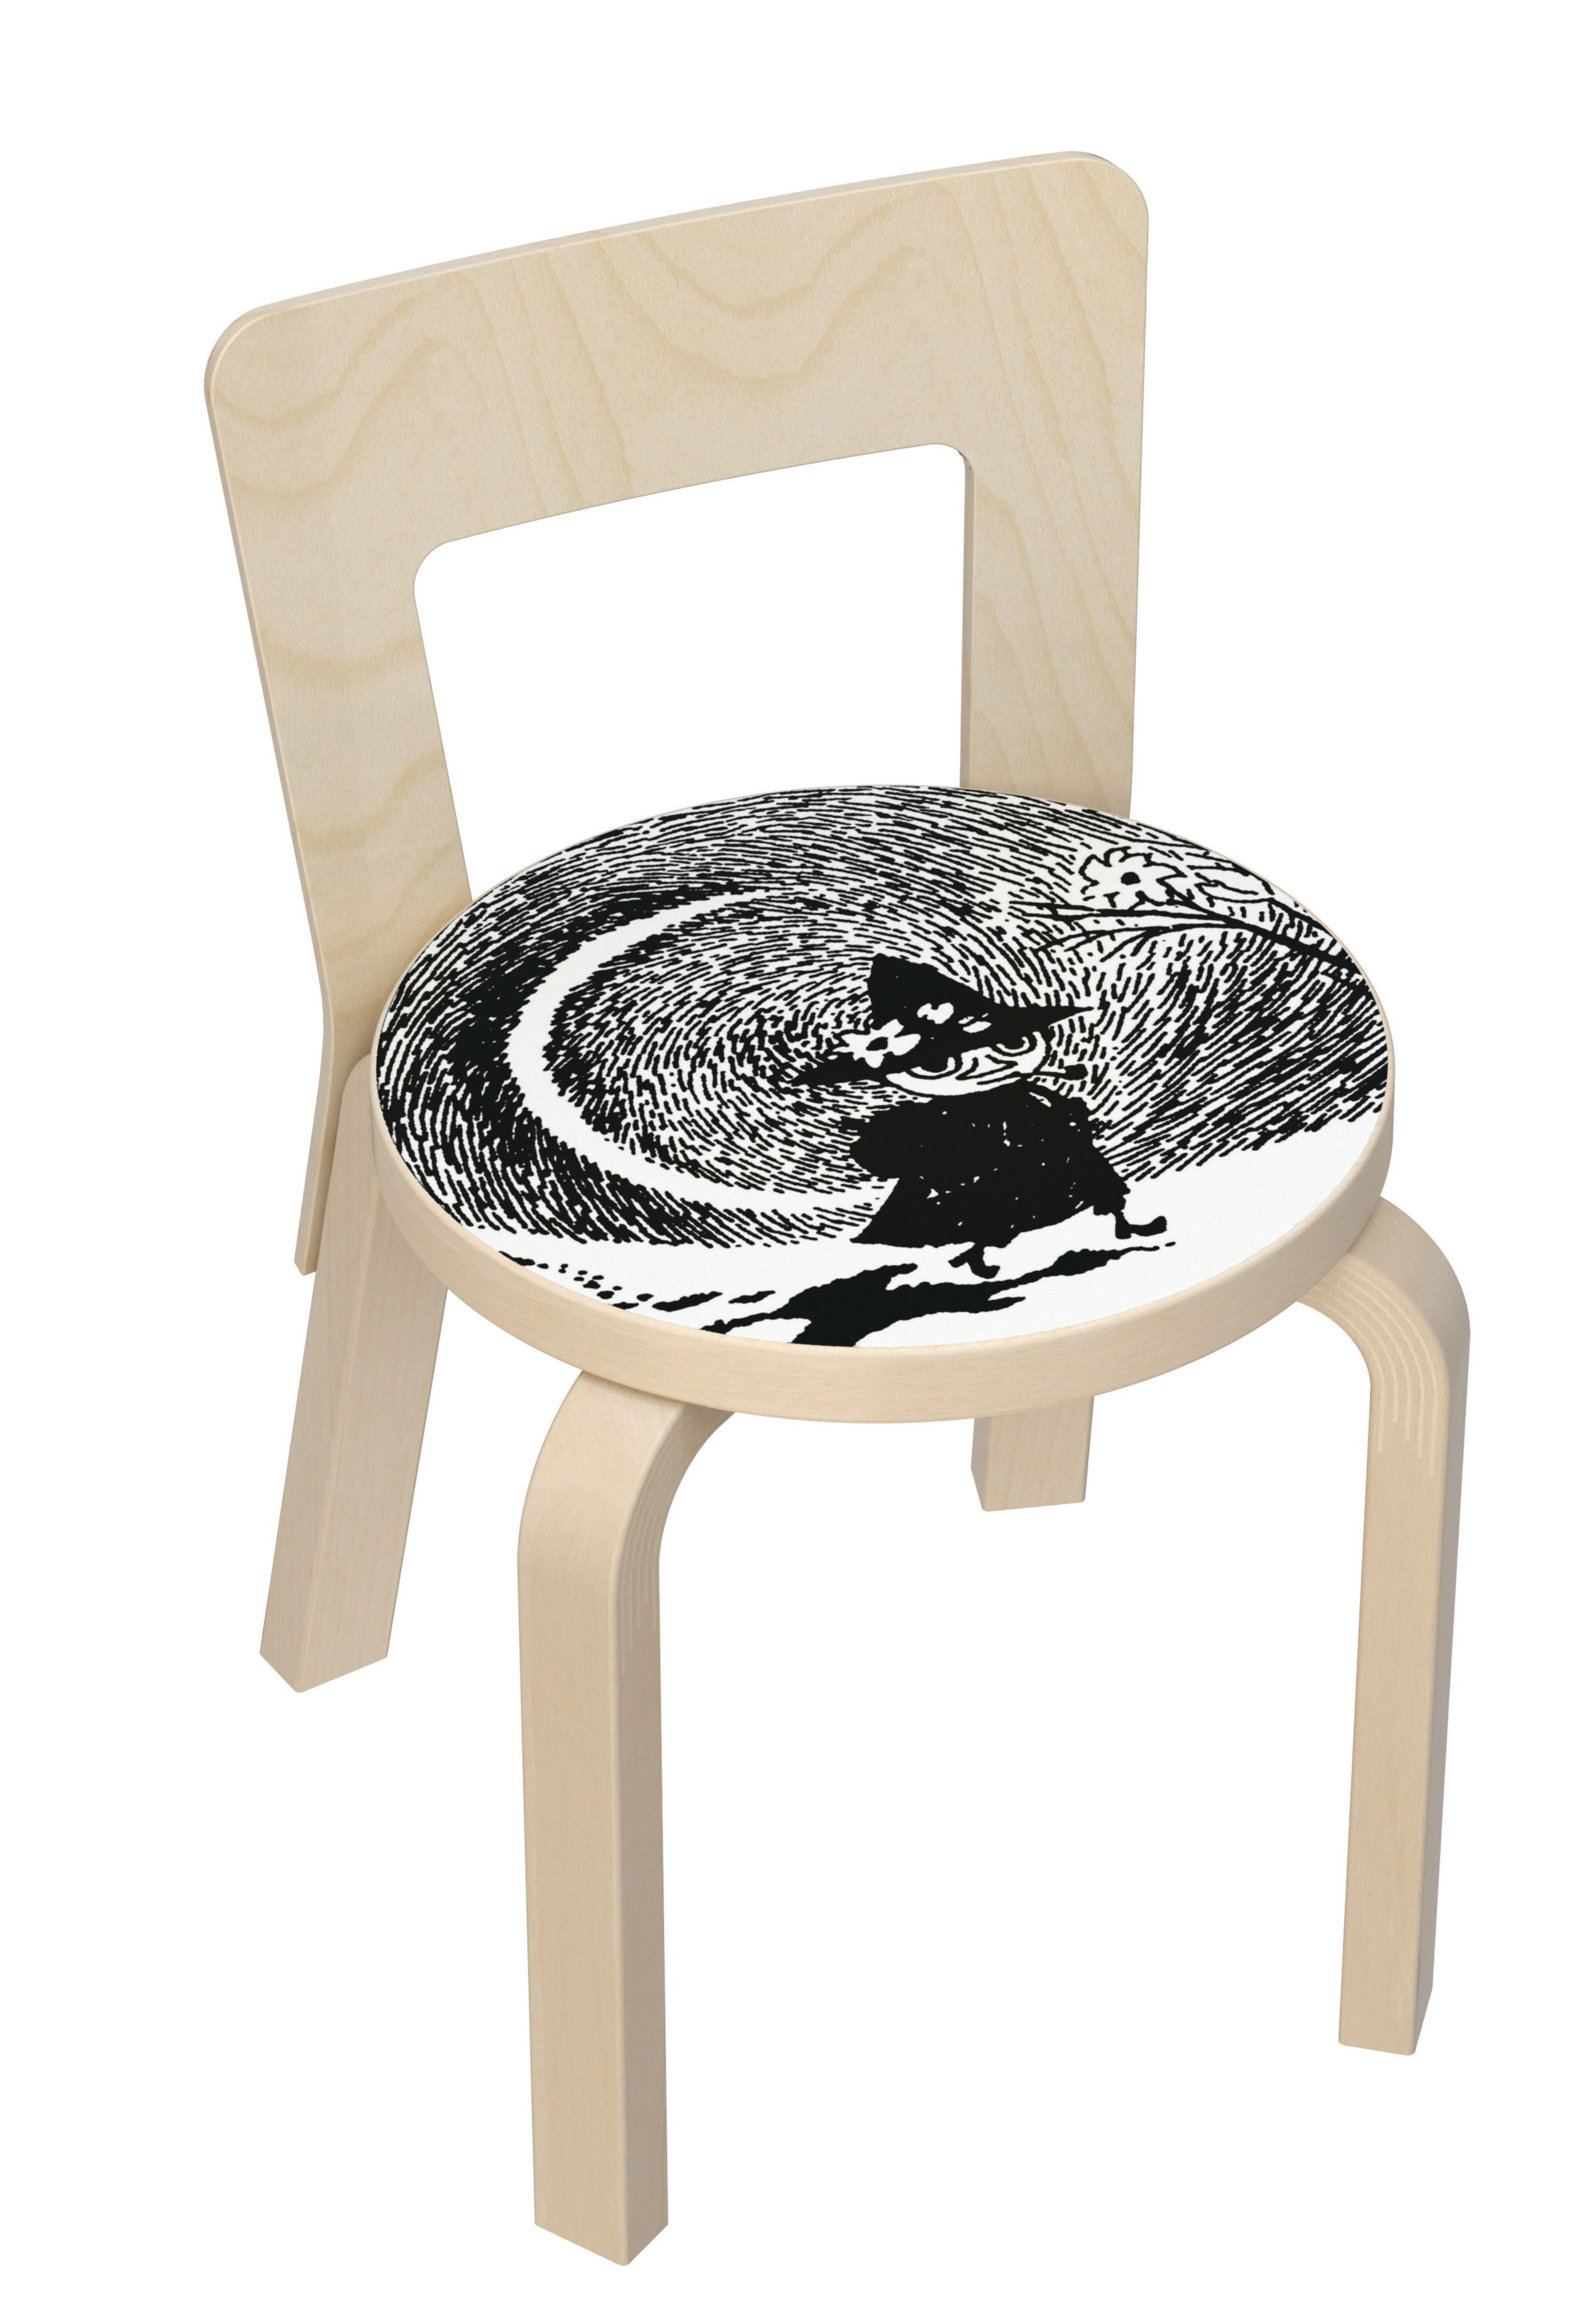 Artek Children's Chair N65 Moomin